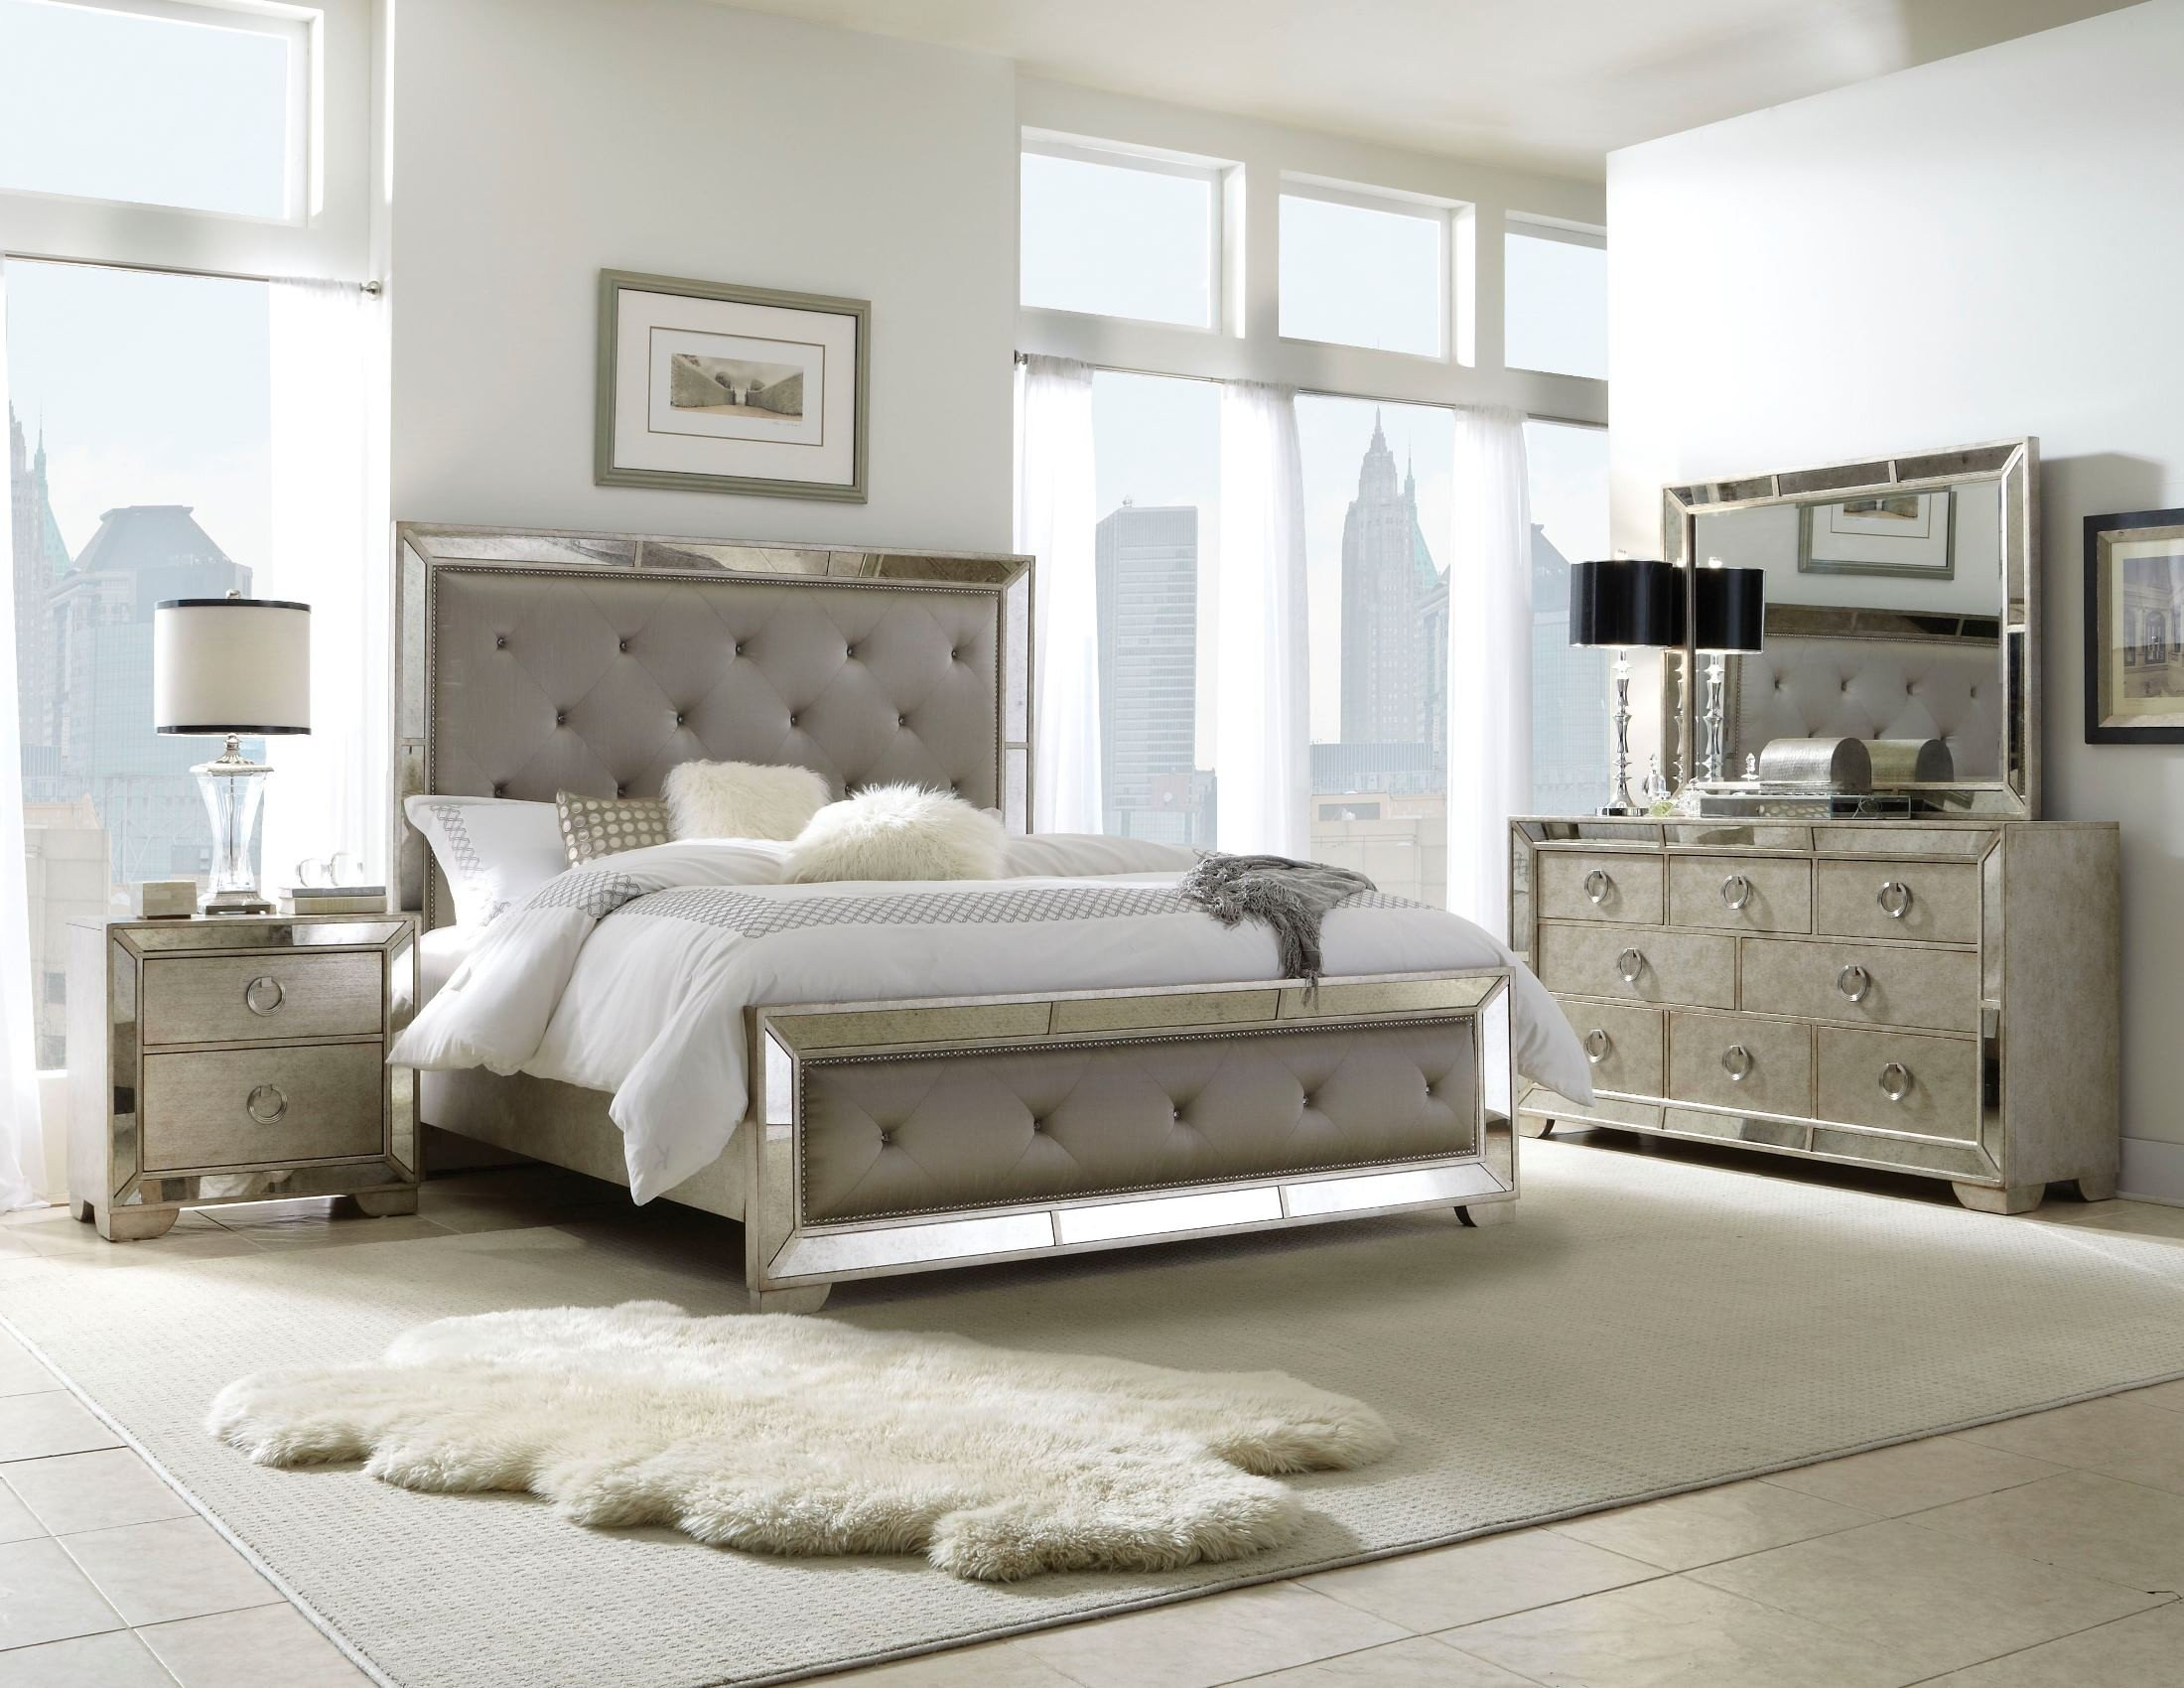 Ava Platform Bedroom Set